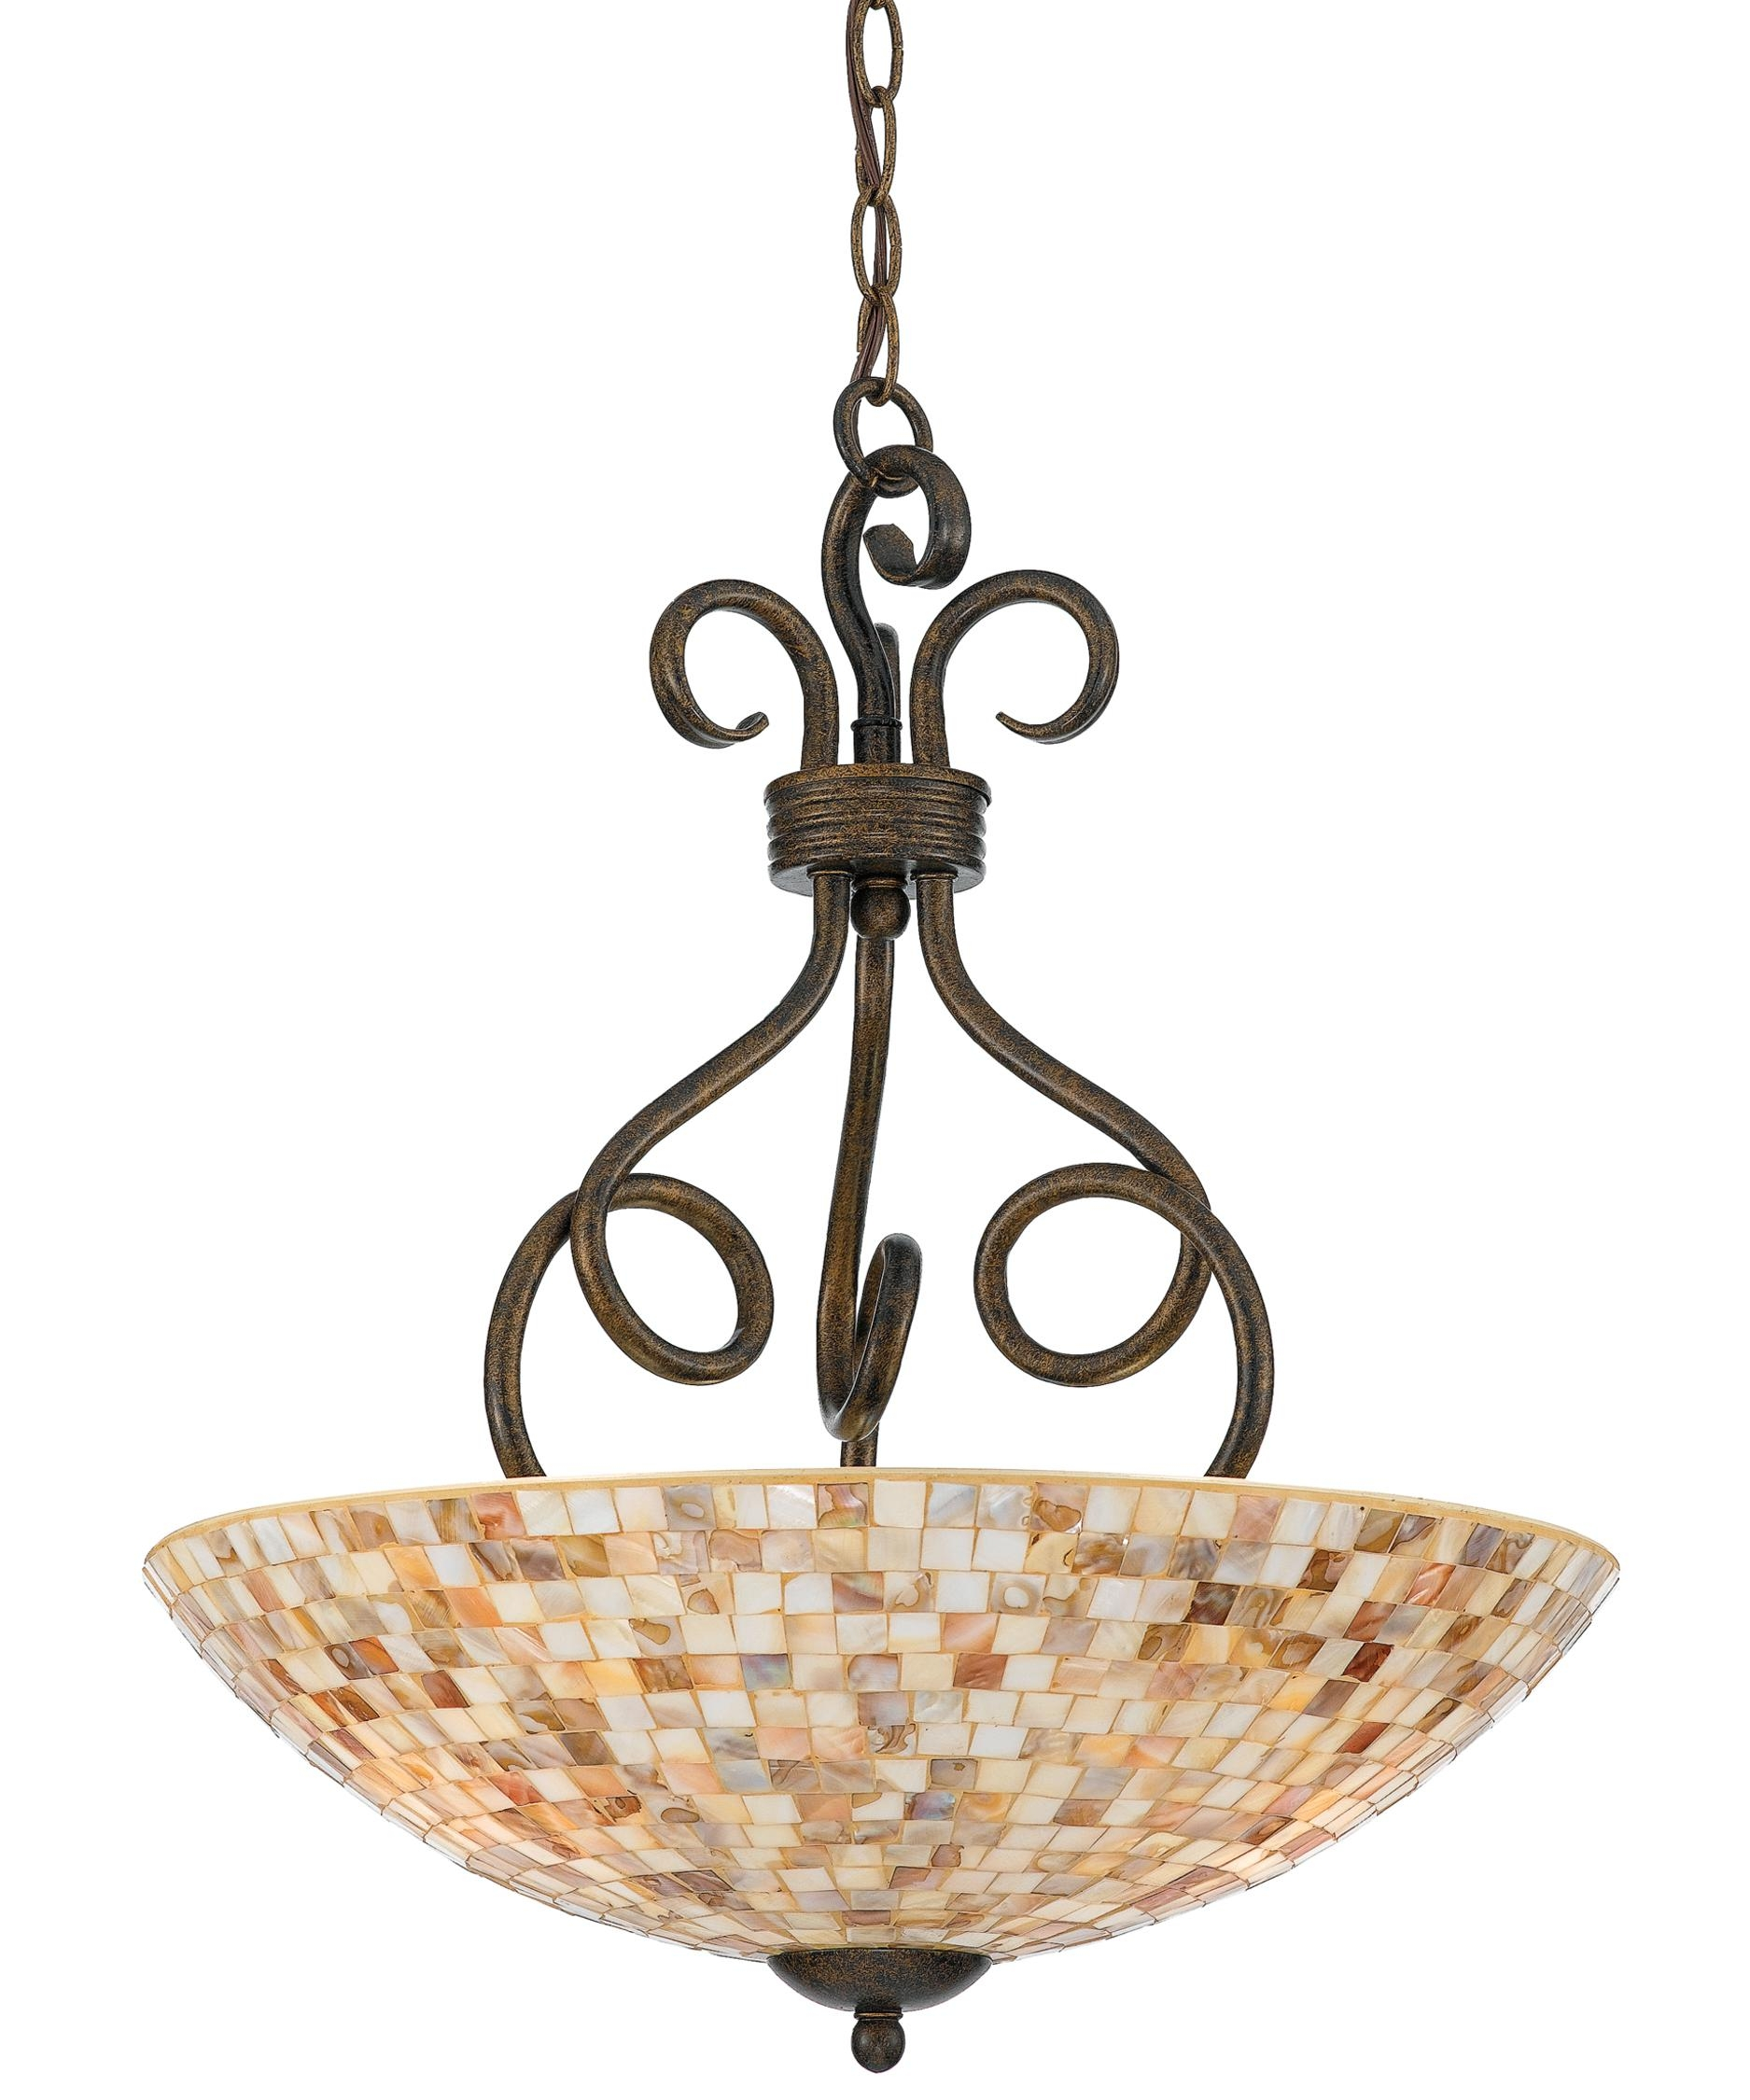 Quoizel My2816 Monterey Mosaic 18 Inch Wide 3 Light Large Pendant Inside Inverted Pendant Chandeliers (Image 22 of 25)